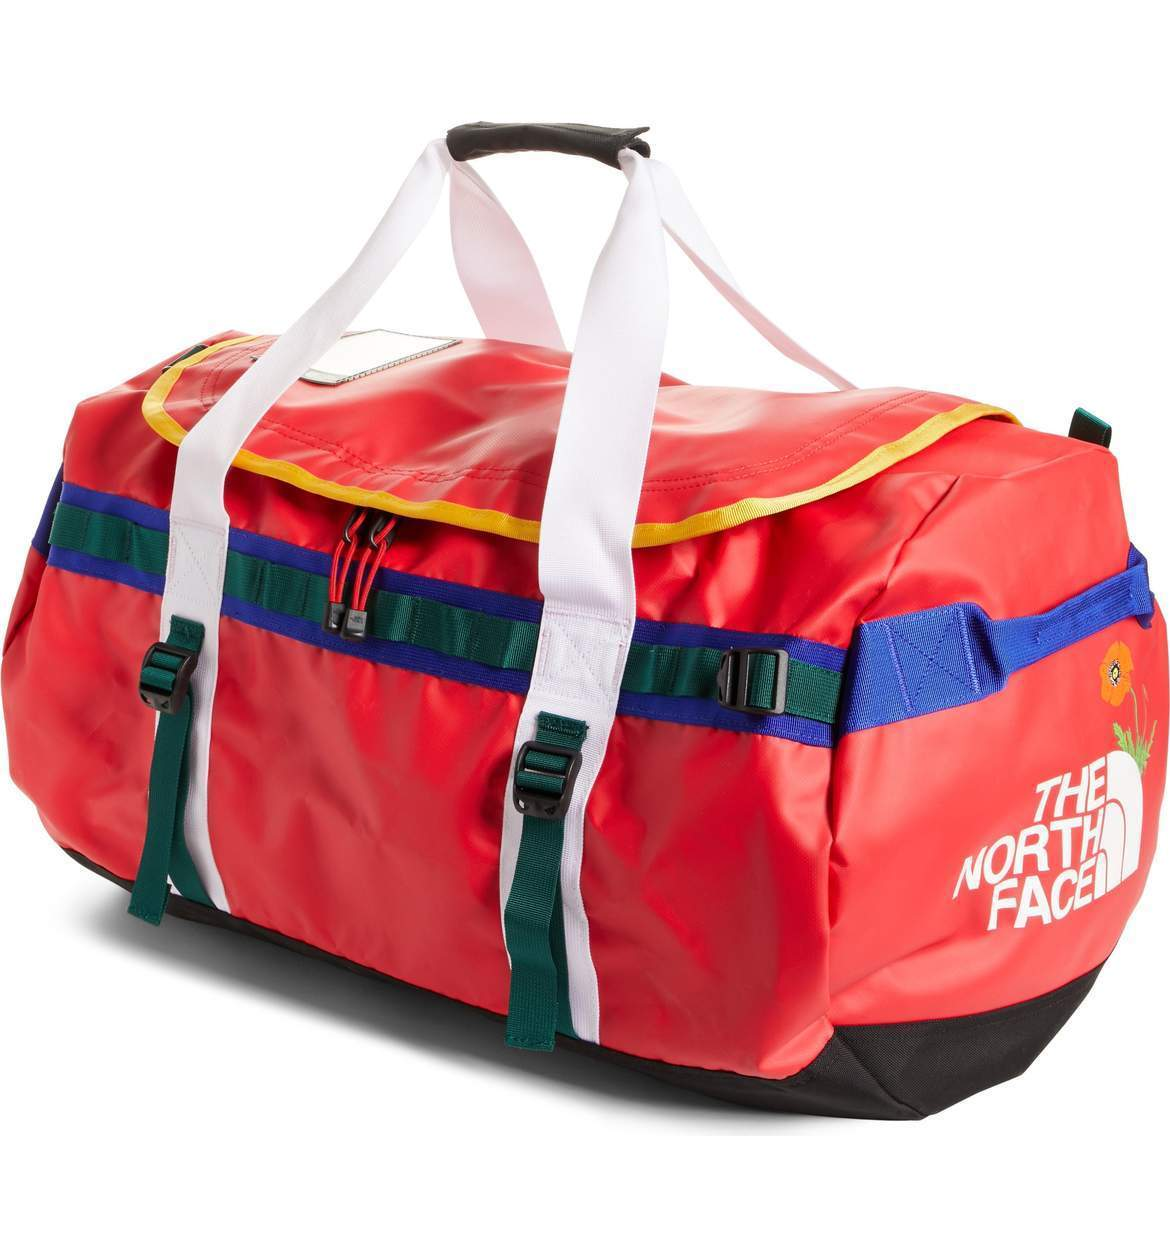 入手困難アイテム THE NORTH FACE Medium Base Camp Duffel Bag